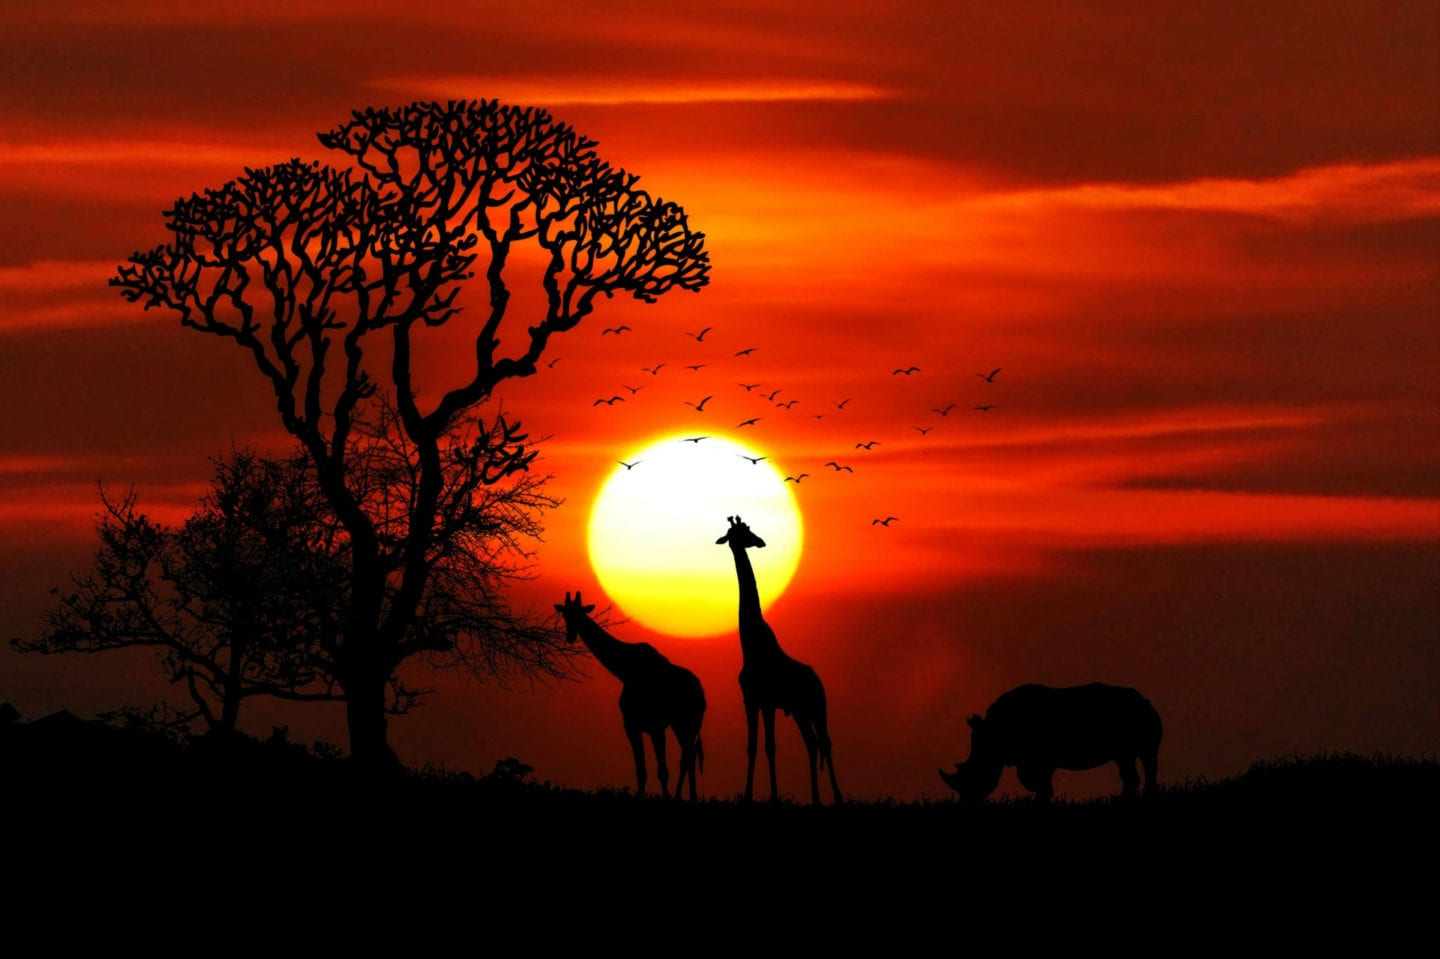 Travelling Africa?!